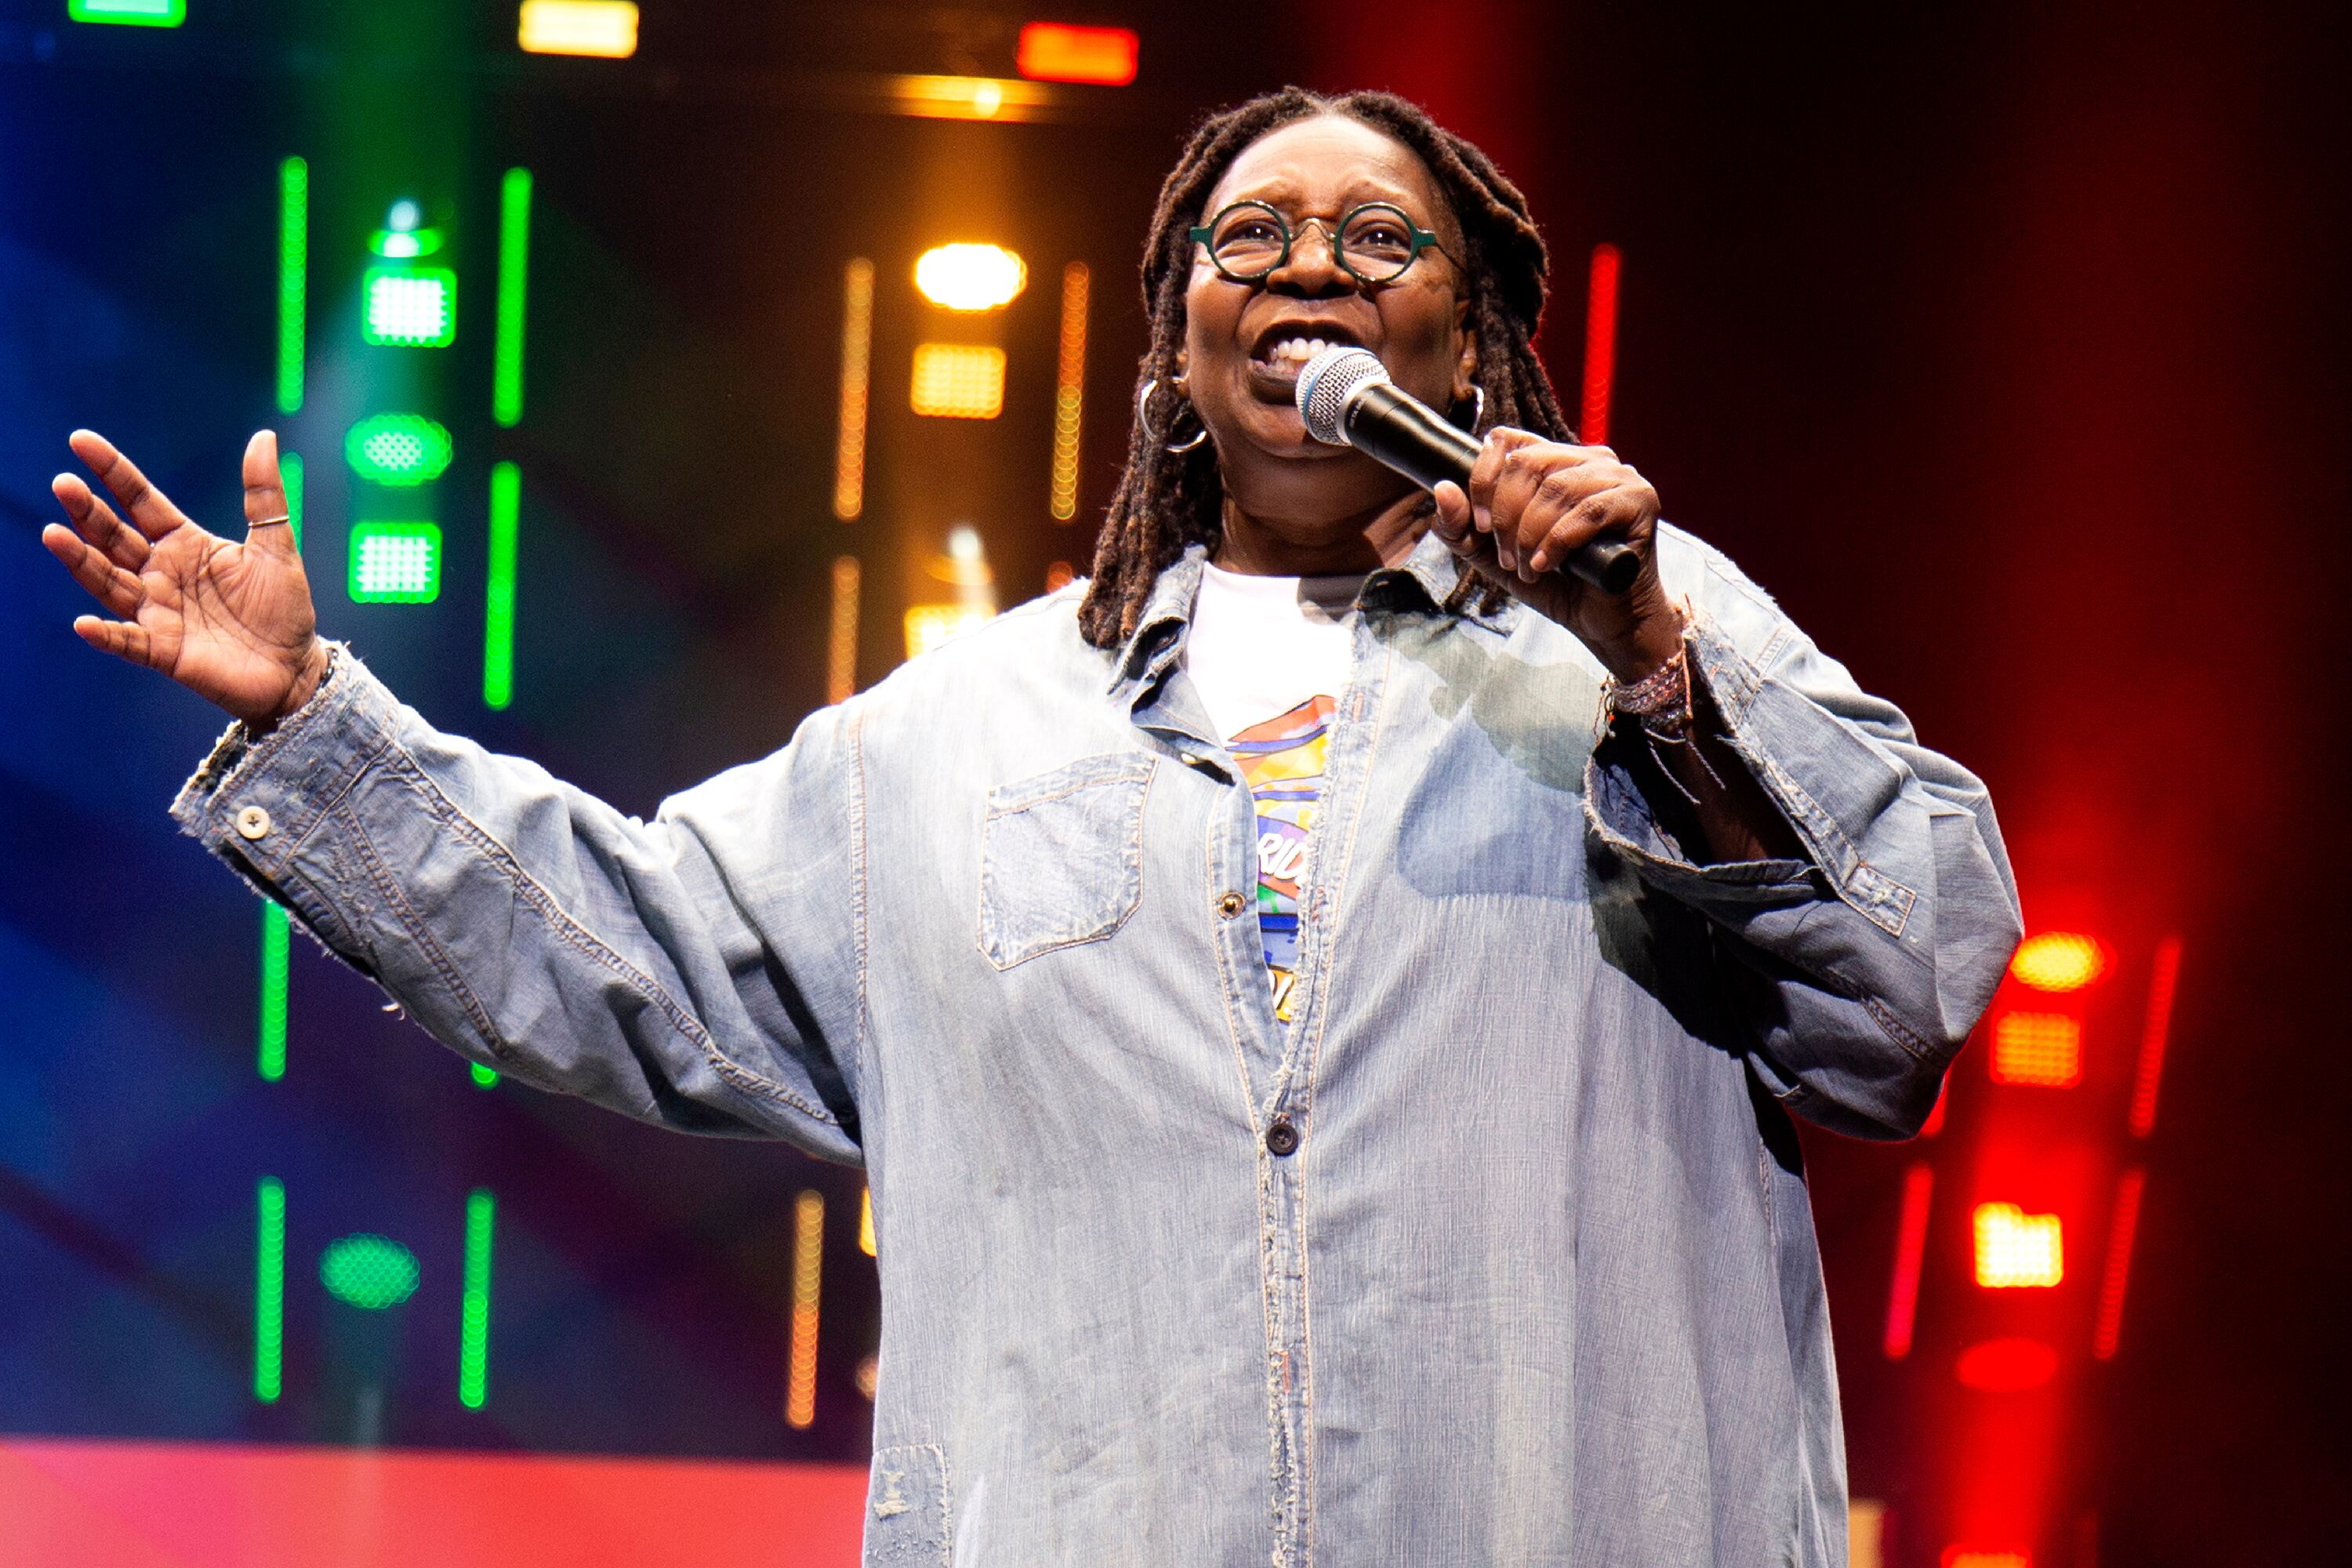 Whoopi Goldberg at one of her recent speaking engagements | Source: Getty Images/GlobalImagesUkraine